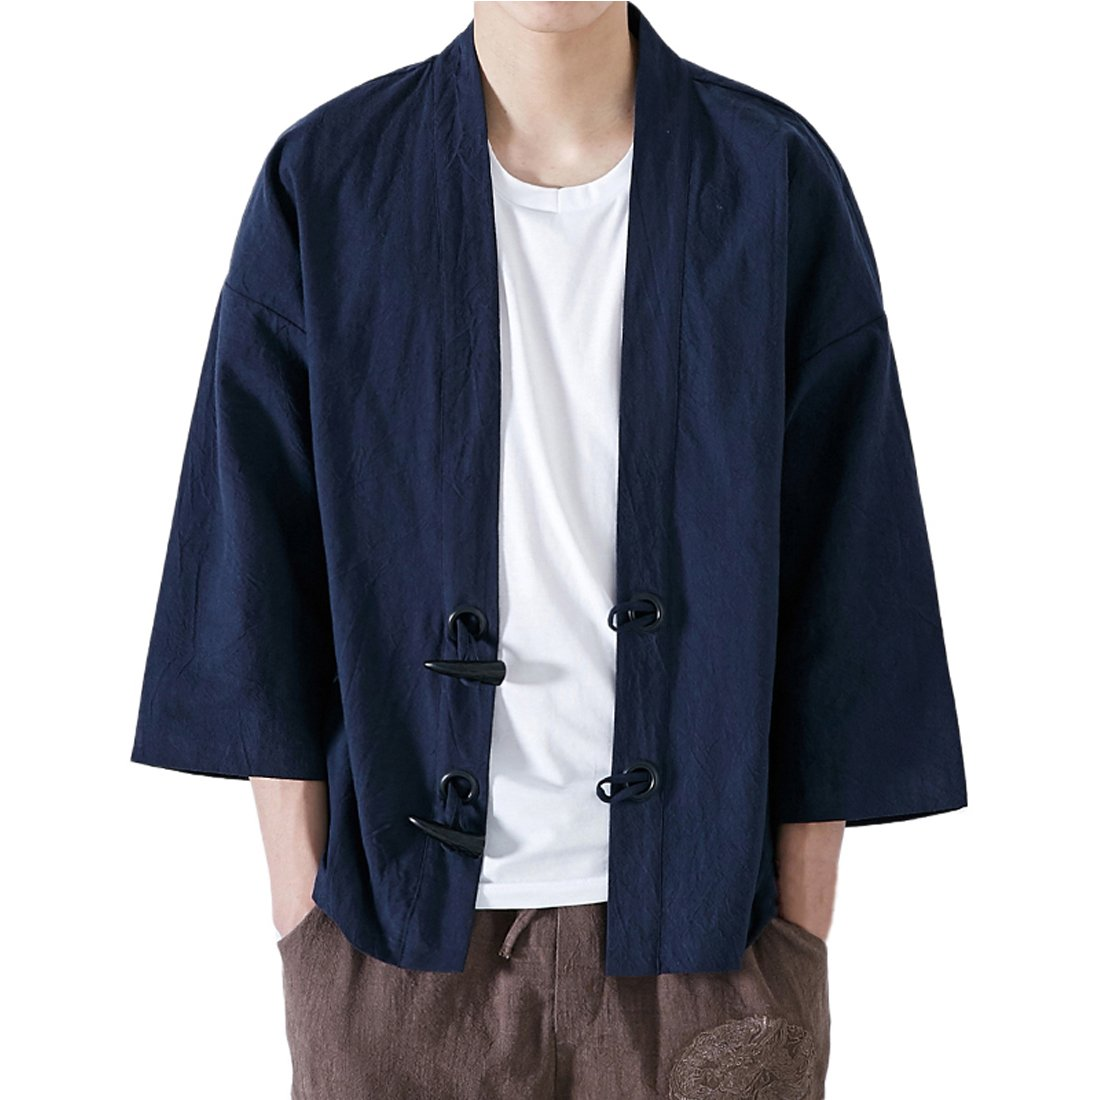 INVACHI Fashion Men's Cotton Blends Linen Cloak Open Front Cardigan Kimono Jackets